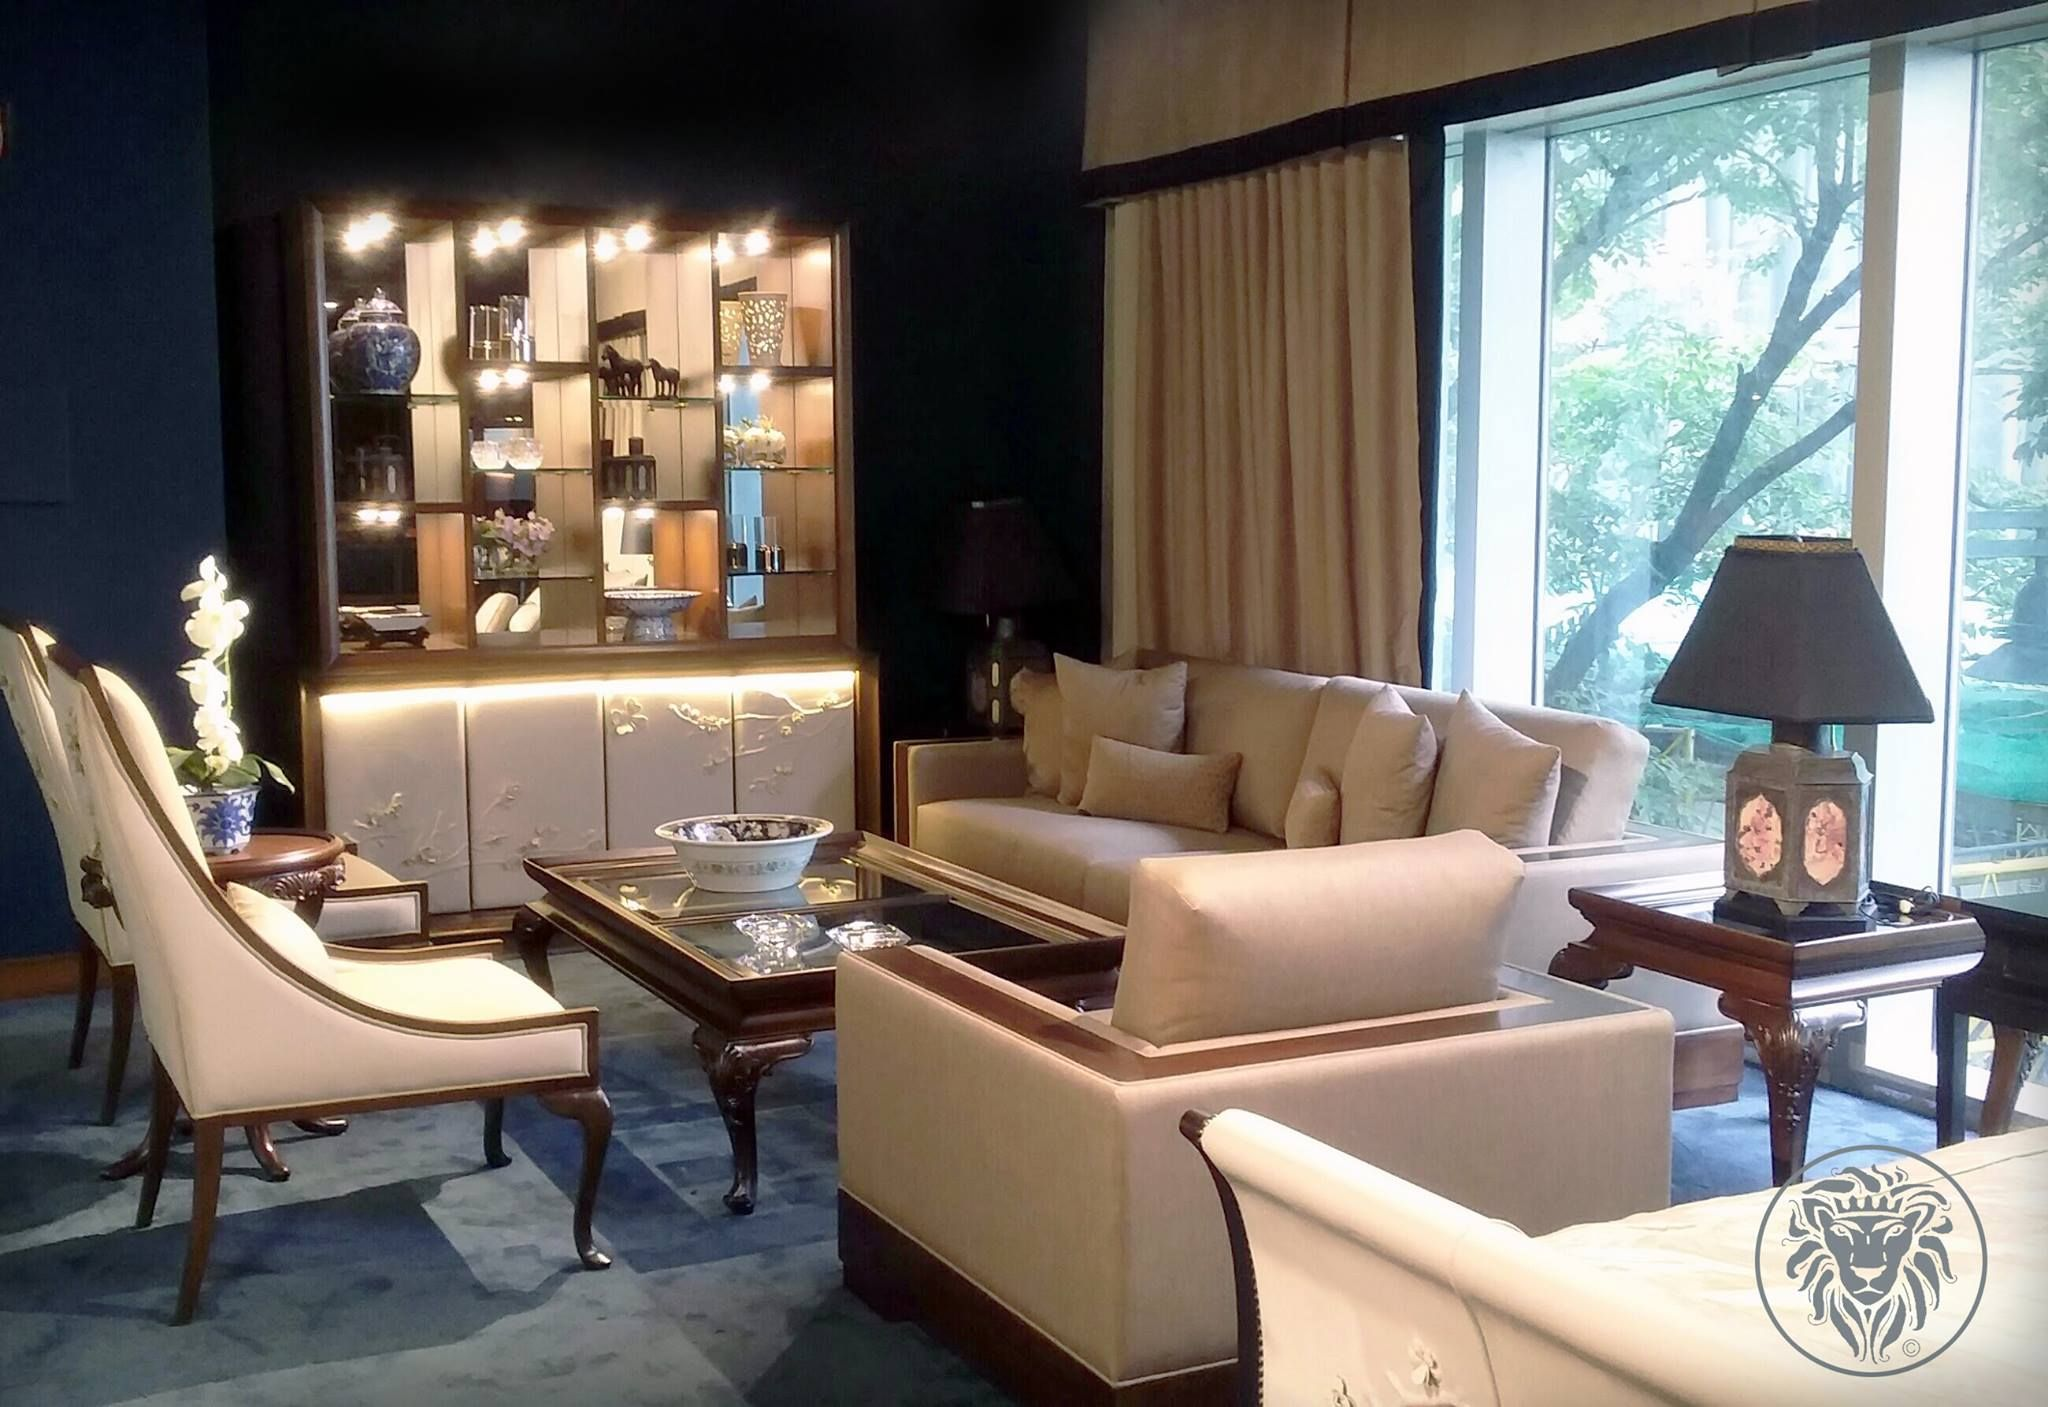 Thomas & George Fine Furniture | Huge master bedroom, Luxury furniture  stores, Eclectic master bedroom